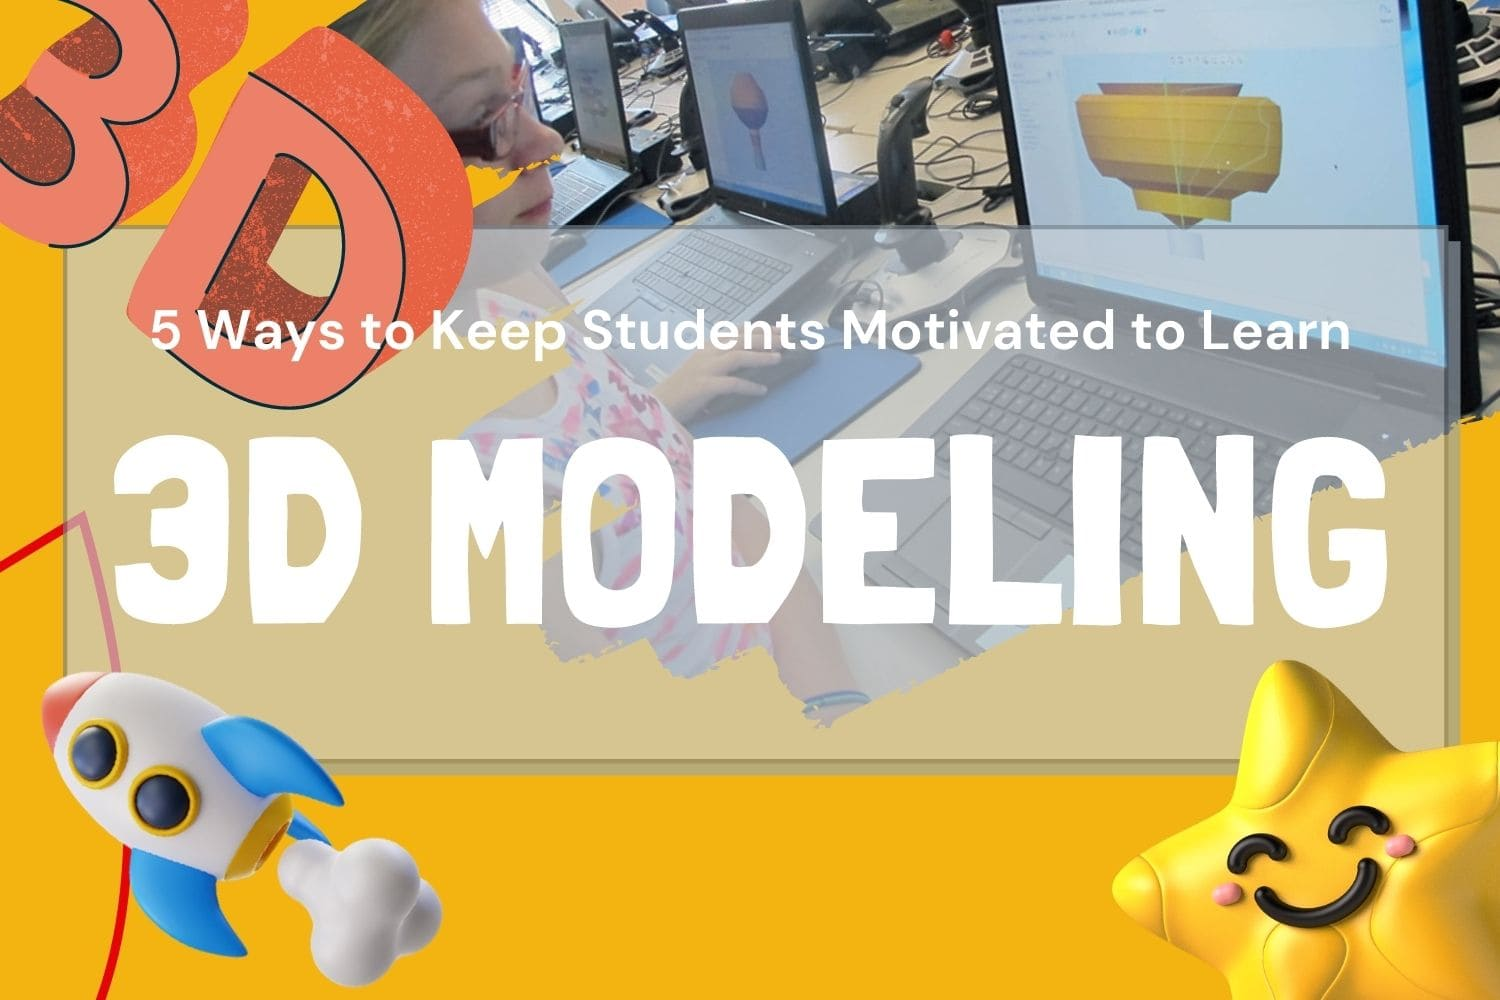 Motivate Students to Learn 3D Modeling